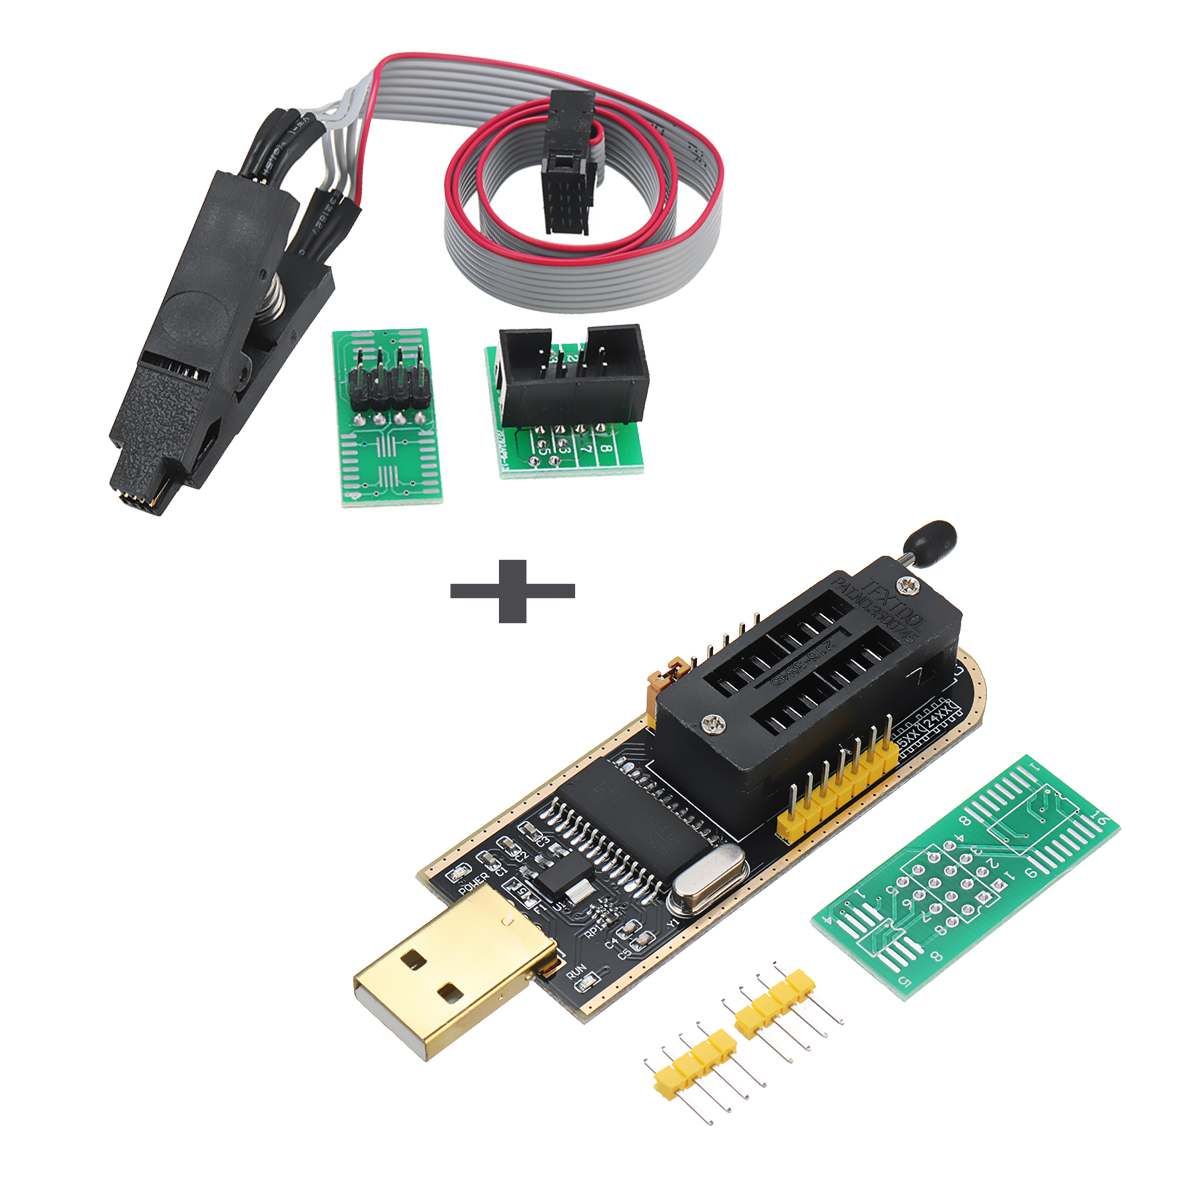 CH341A 24 25 Series EEPROM Flash BIOS USB Programmer + SOIC8 SOP8 Clip Adapter ModuleCH341A 24 25 Series EEPROM Flash BIOS USB Programmer + SOIC8 SOP8 Clip Adapter Module